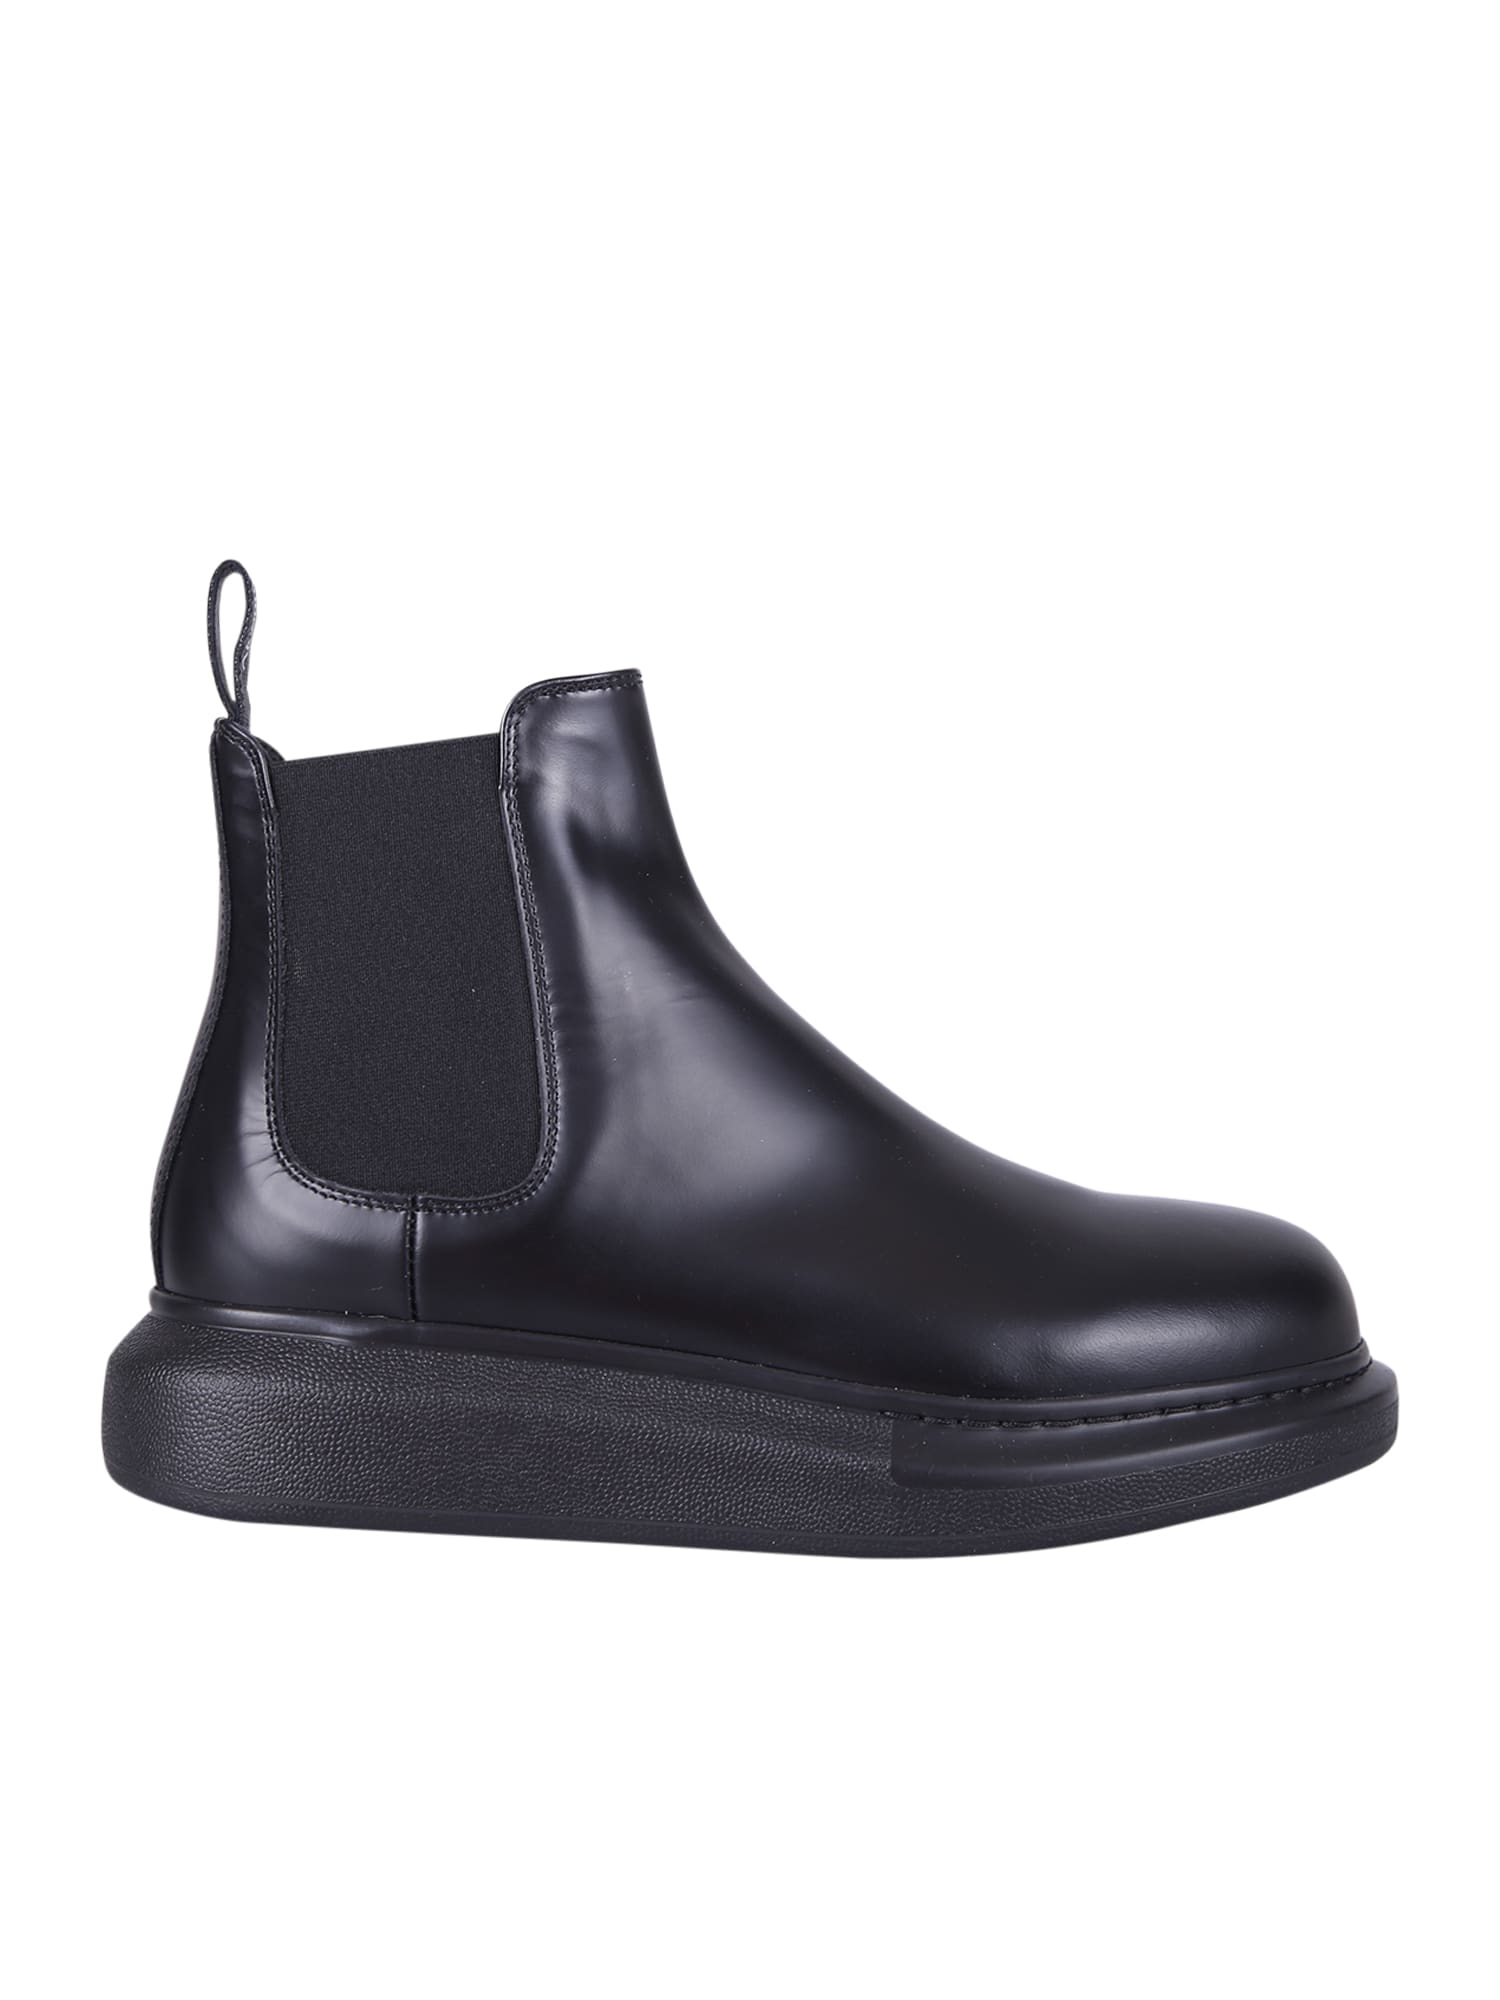 Buy Alexander McQueen Ankle Boots online, shop Alexander McQueen shoes with free shipping